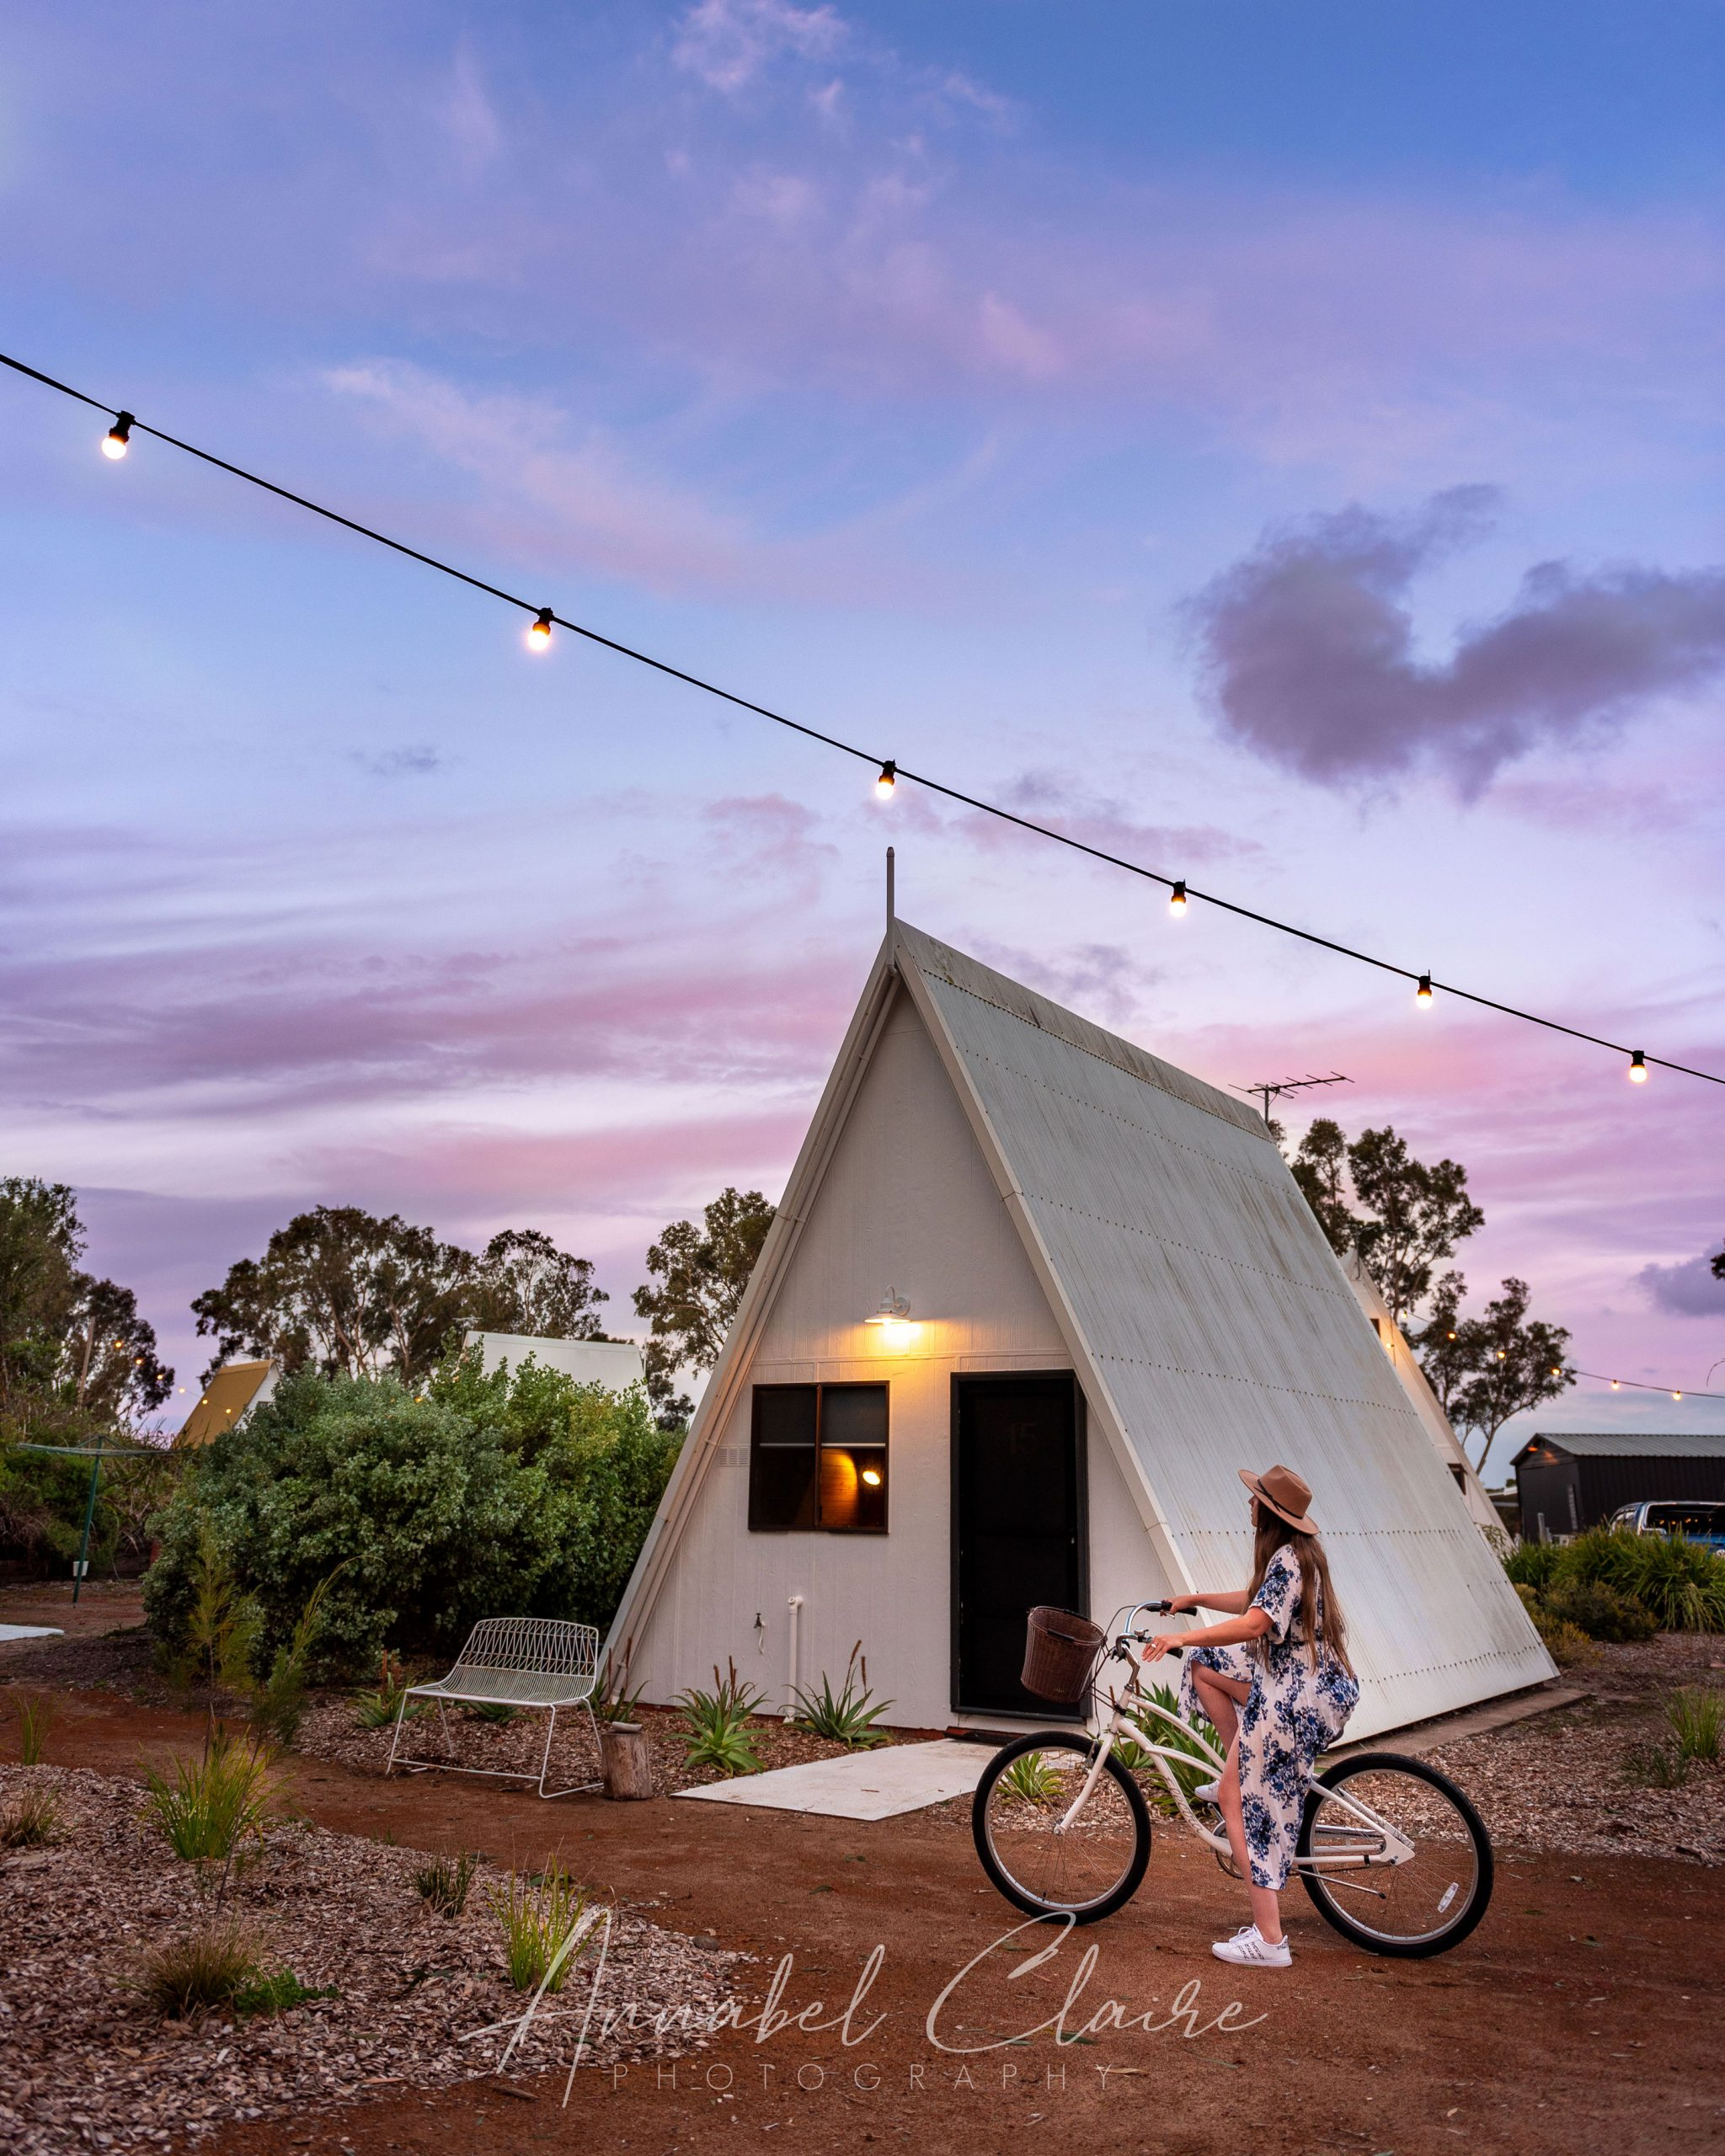 girl rides bike in front of Aframe house to show accommodation at Esperance Chalet Village while driving the south west edge